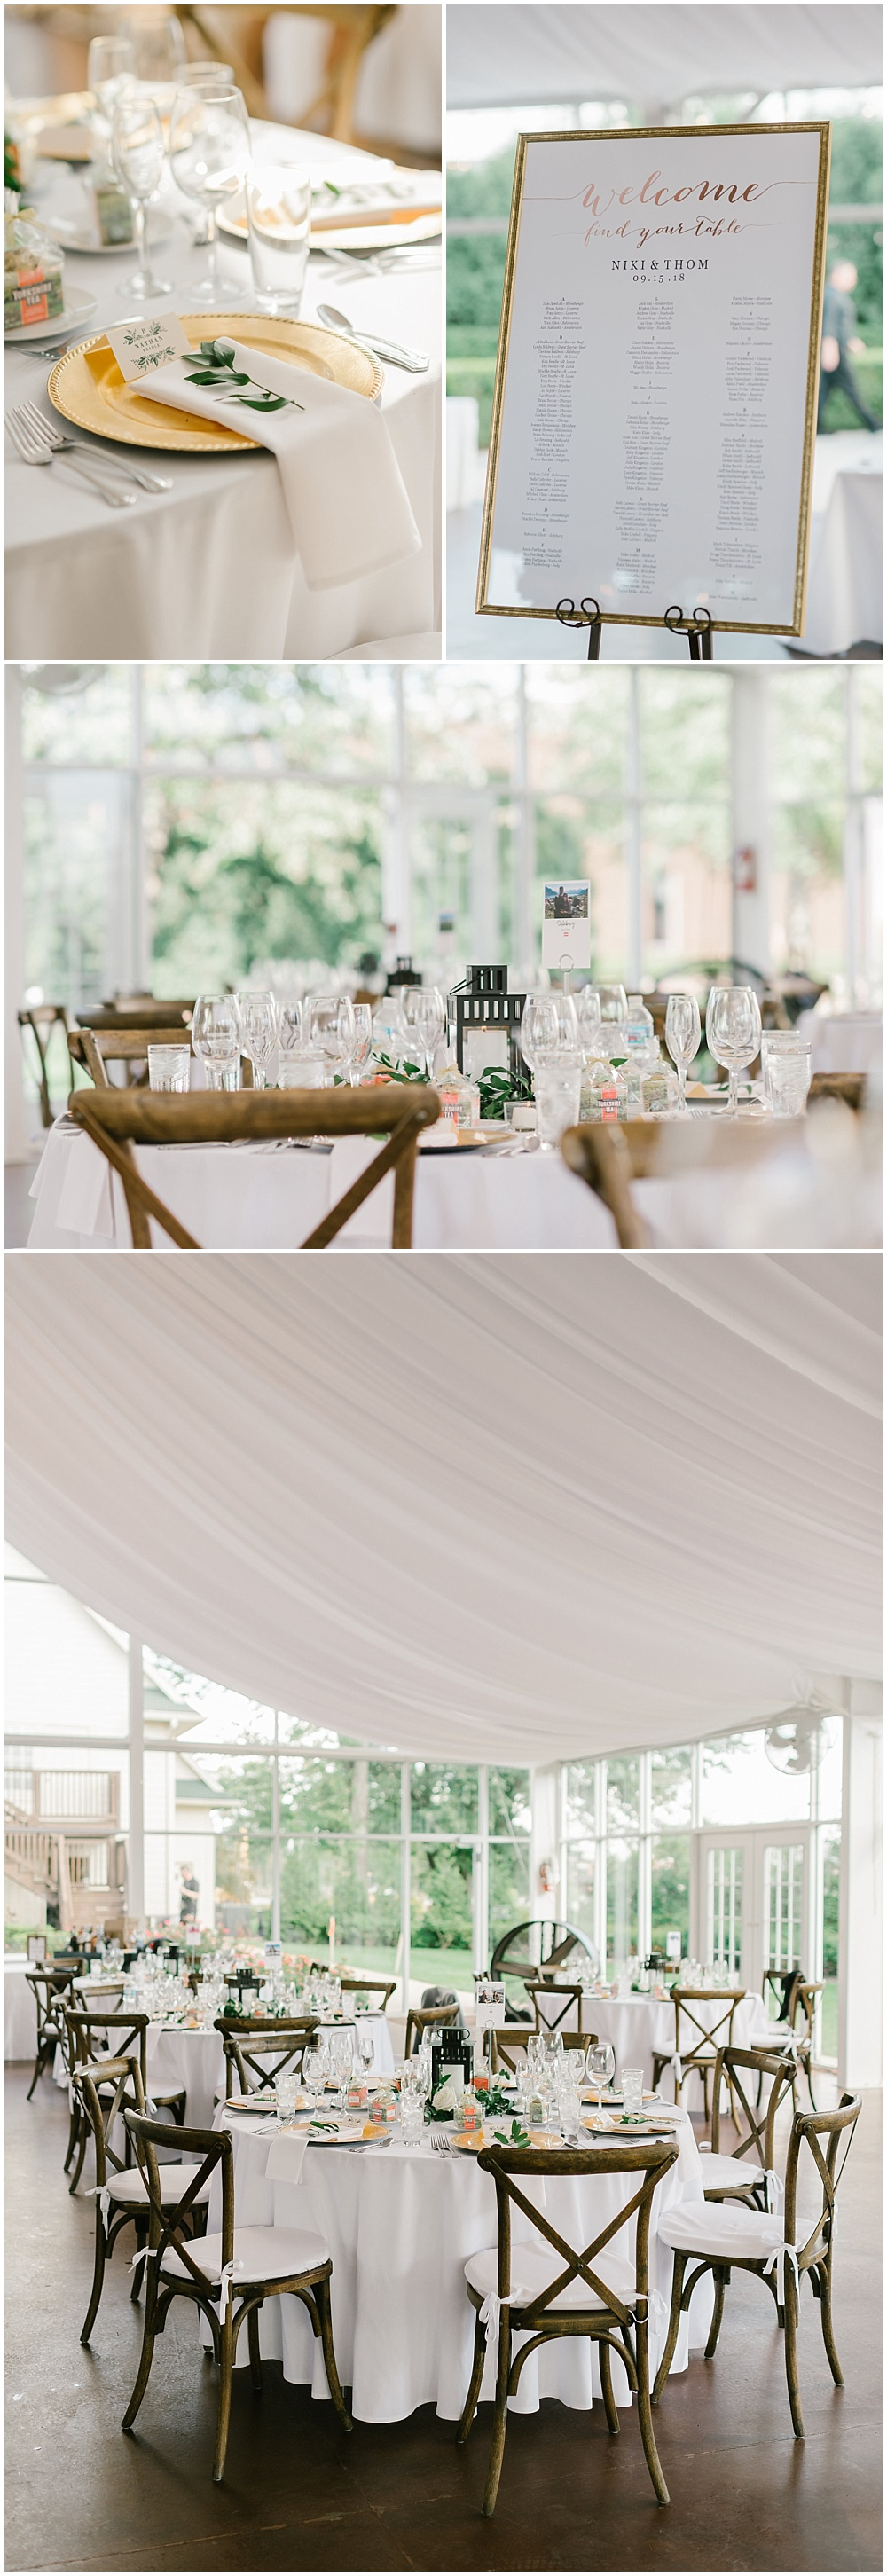 Simple wedding tablescape details with white linens, wooden cross-back chairs and sprigs of greenery at each guests' setting Fall garden-inspired wedding at the Ritz Charles Garden Pavilion in Carmel, Indiana | Jessica Dum Wedding Coordination